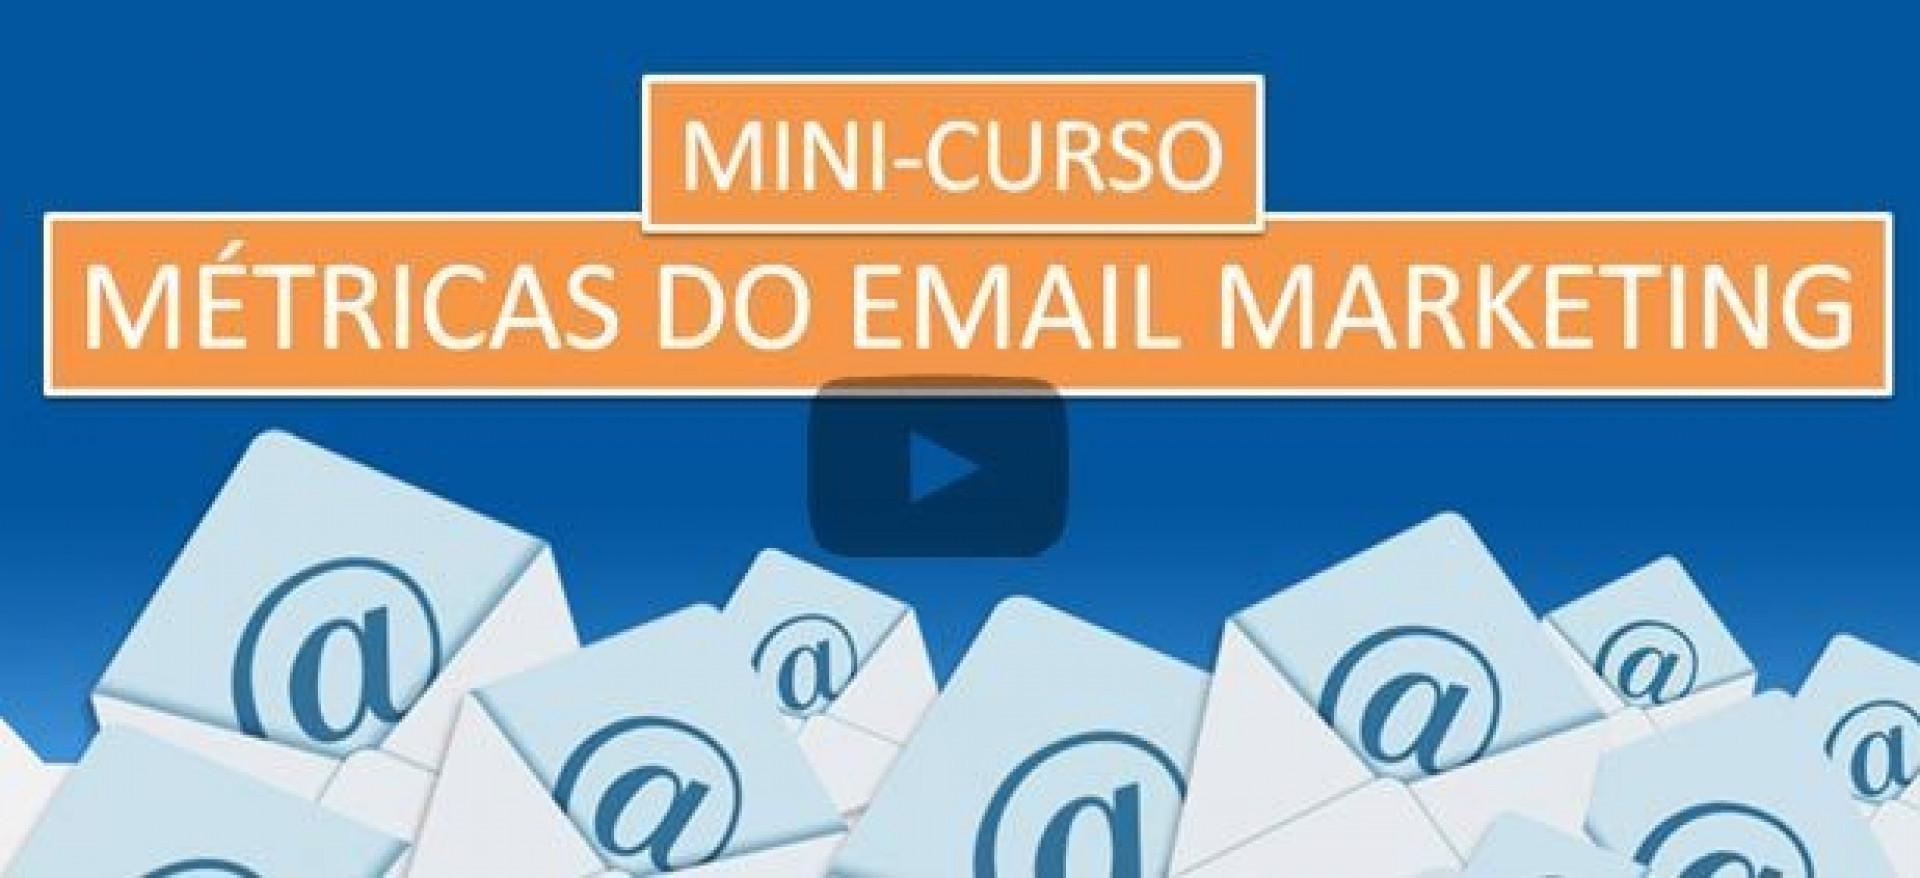 Mini-curso Métricas Essenciais do Email Marketing (vídeo)